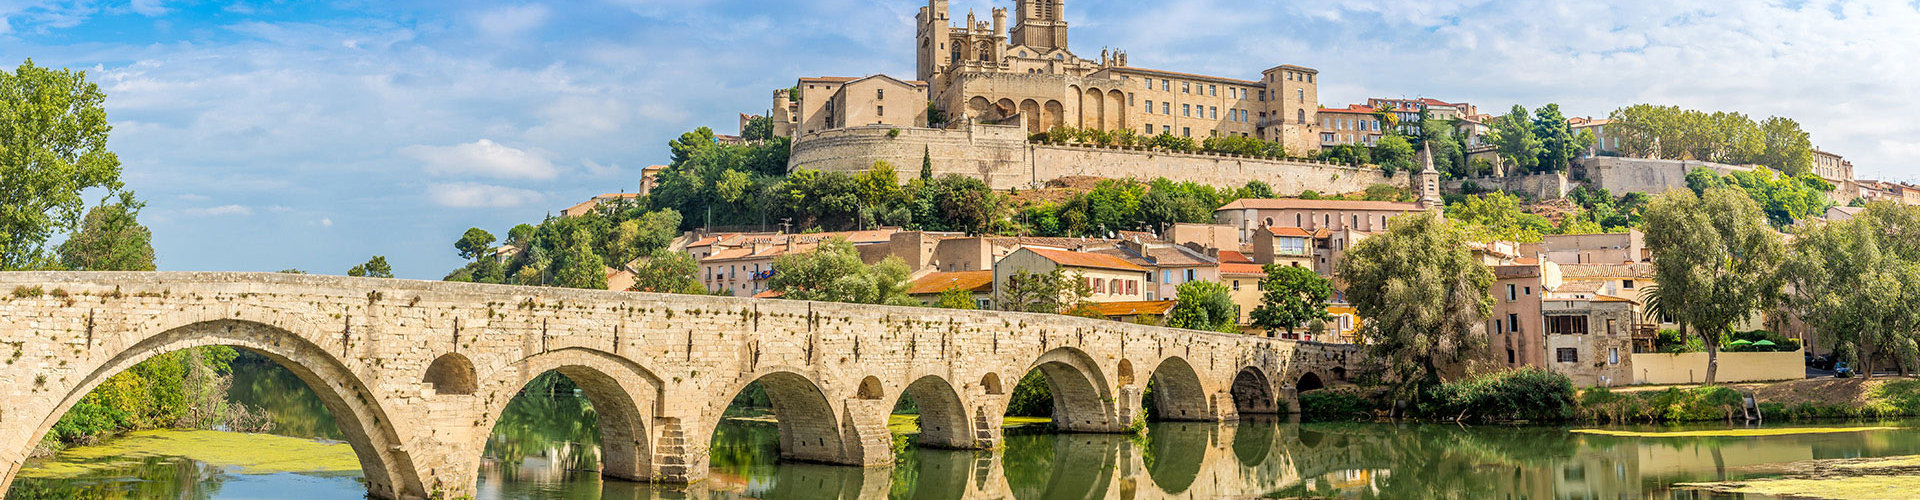 Beziers am Canal du Midi